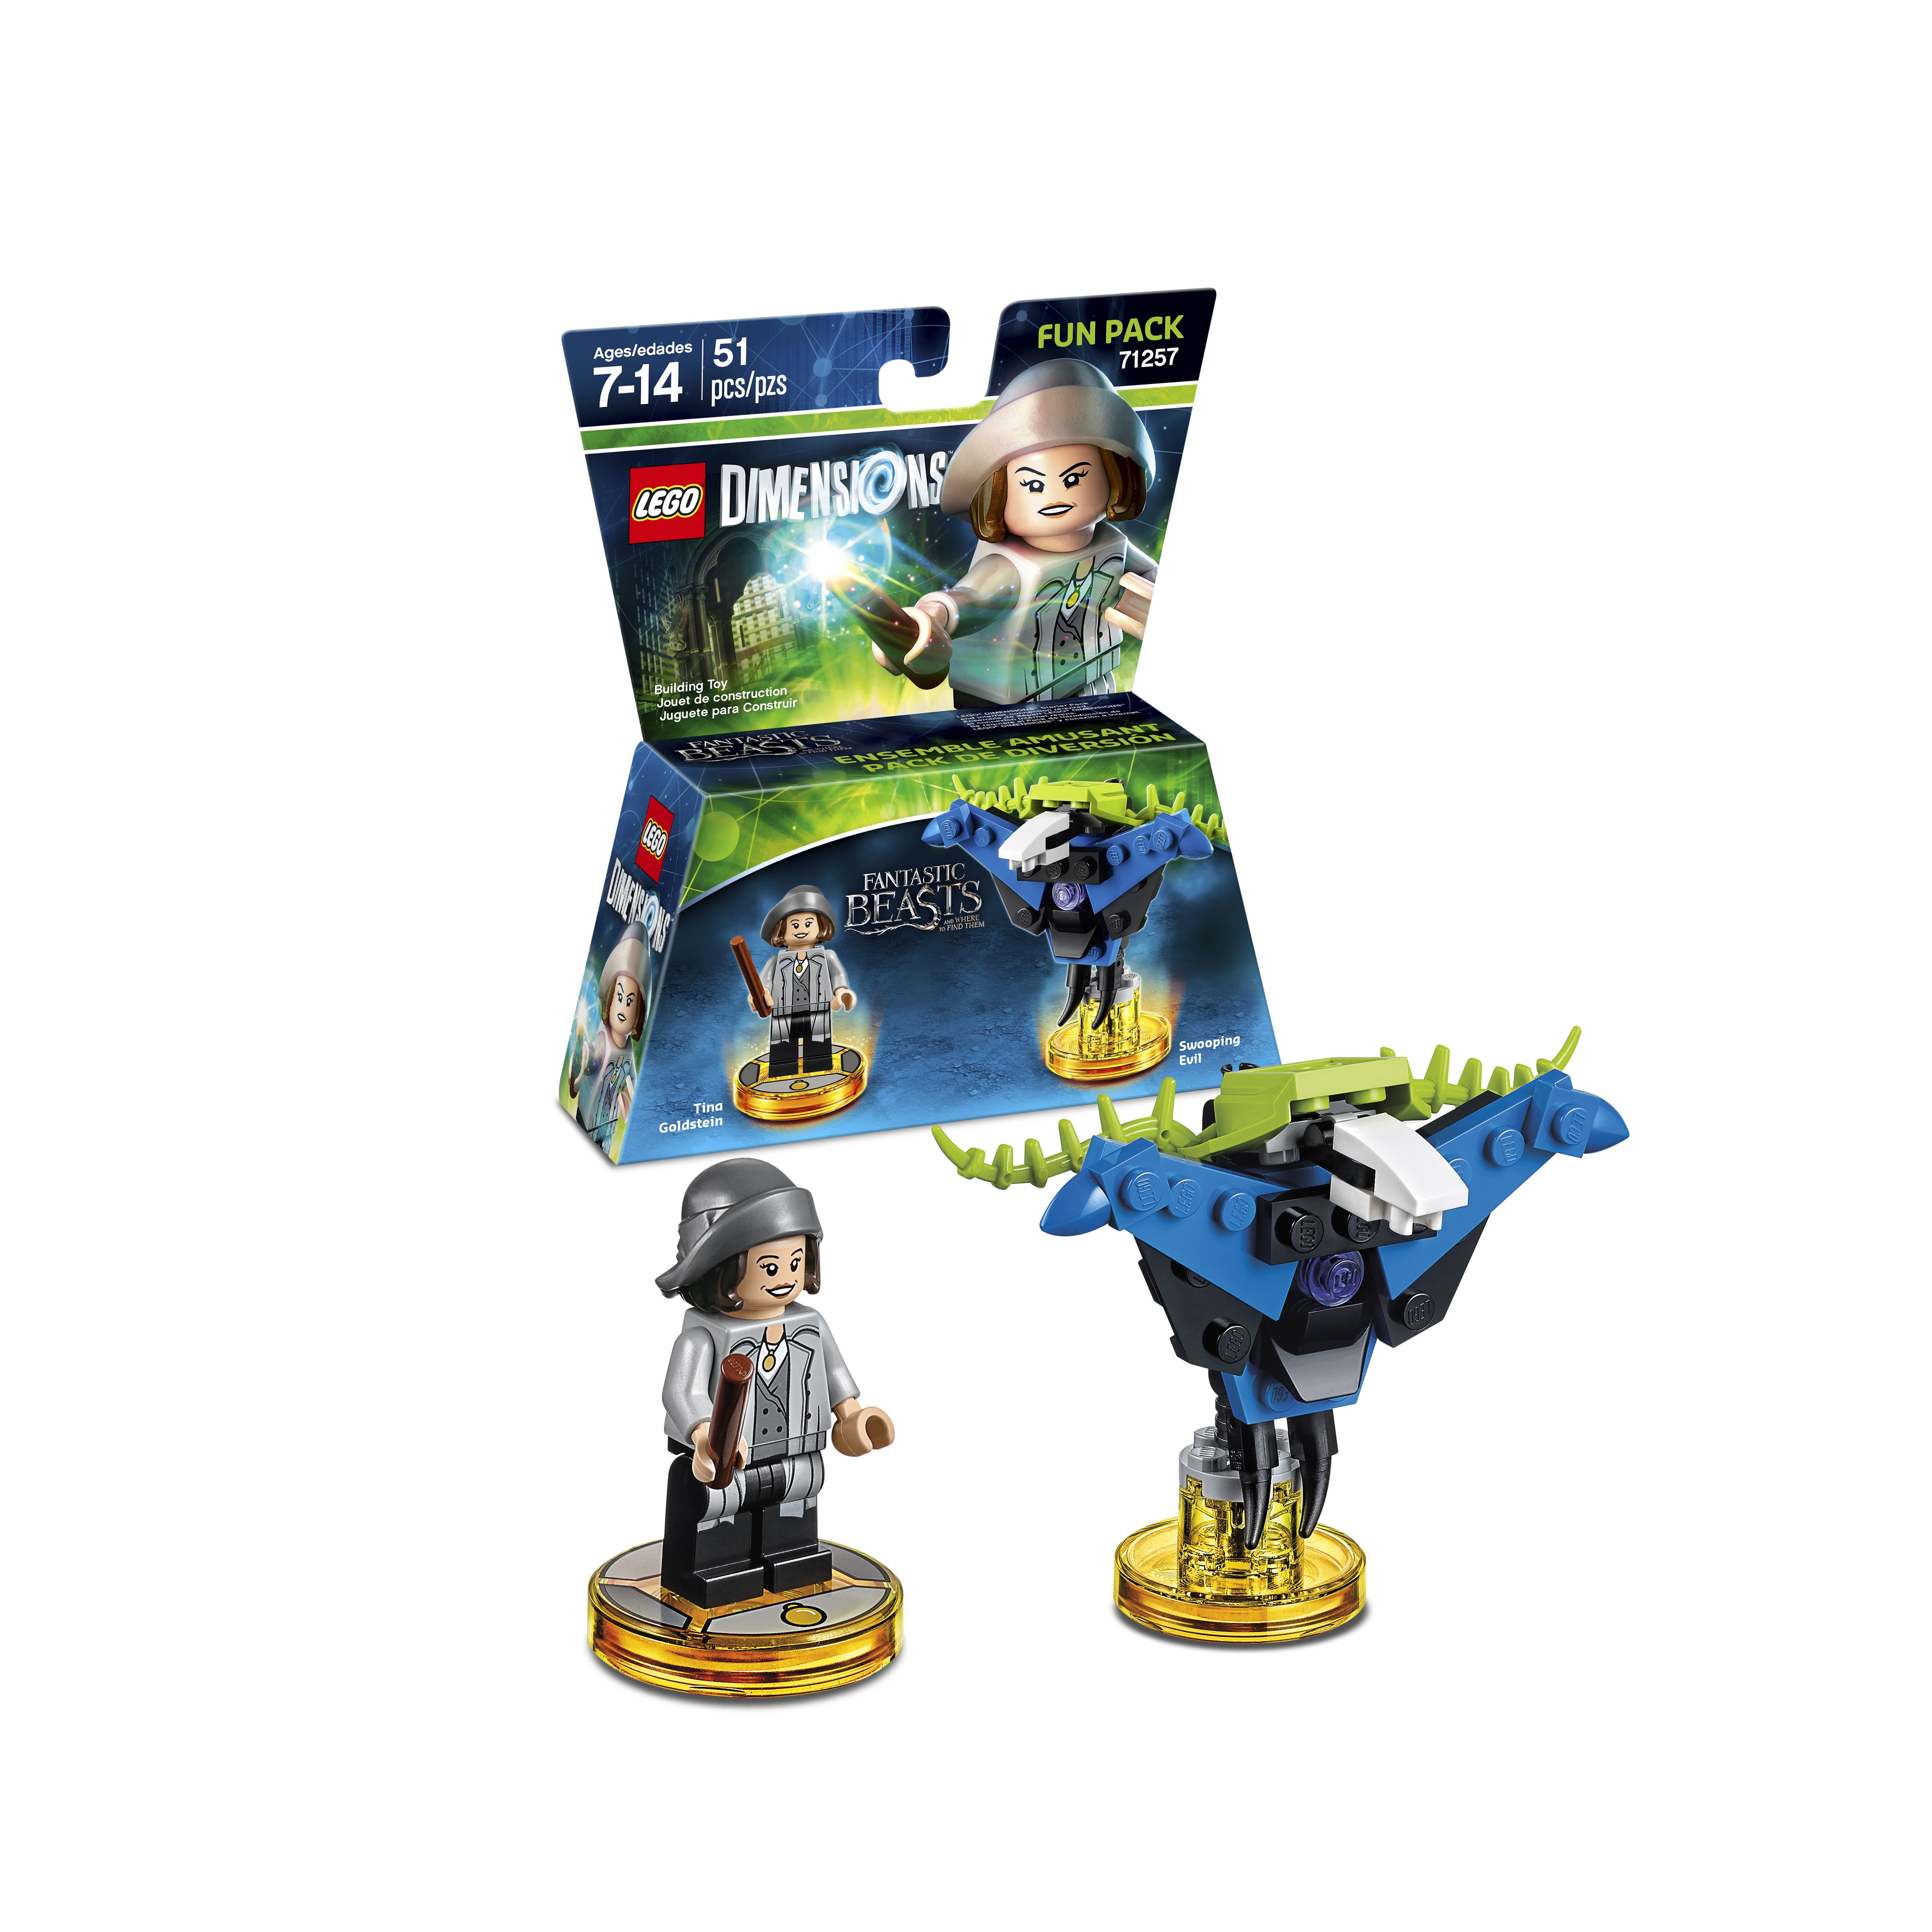 LEGO Dimensions Features Fantastic Beasts in New Gameplay Trailer